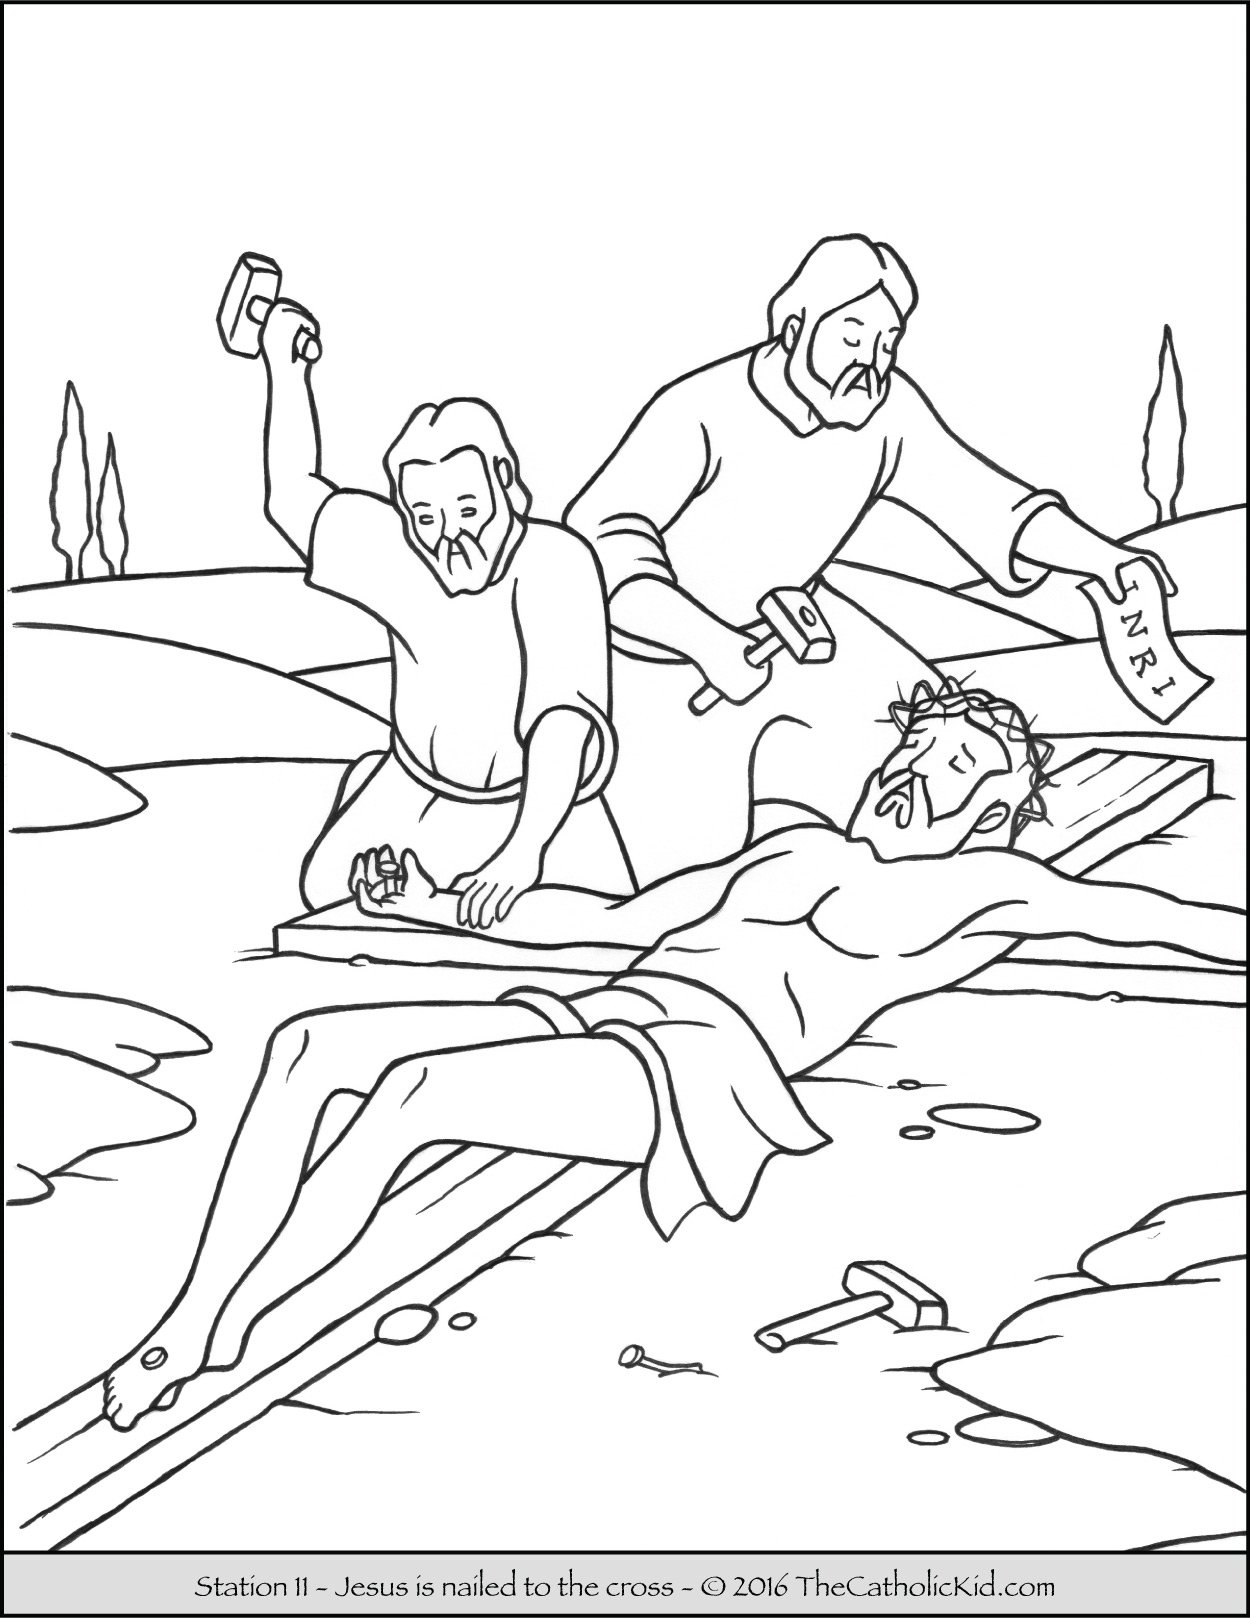 Stations Of The Cross Coloring Pages Gorgeous Stations Of The Cross Coloring Pages  The Catholic Kid Review